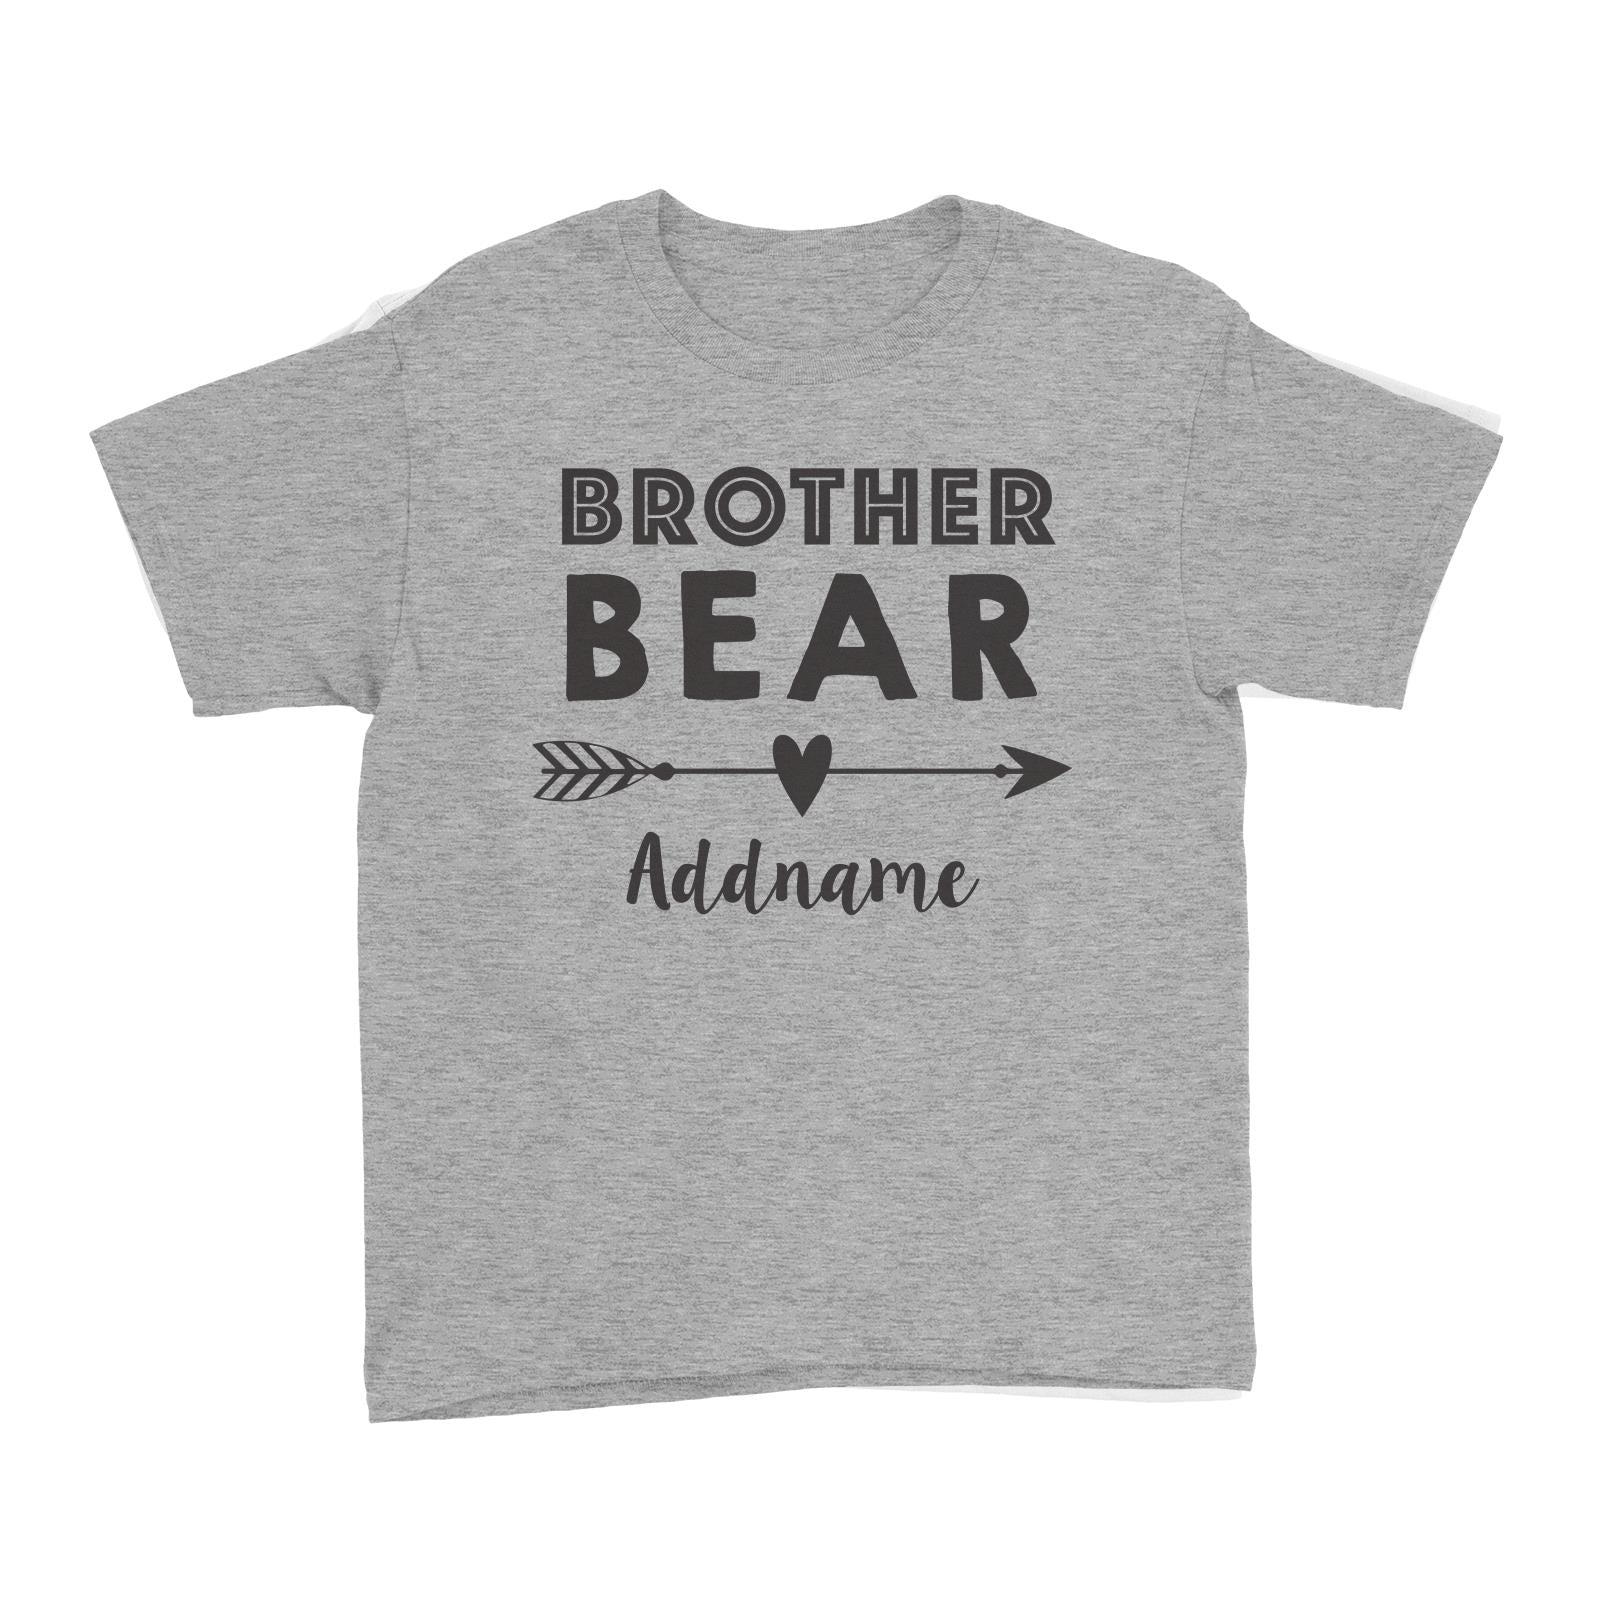 Brother Bear Addname Kid's T-Shirt  Matching Family Personalizable Designs